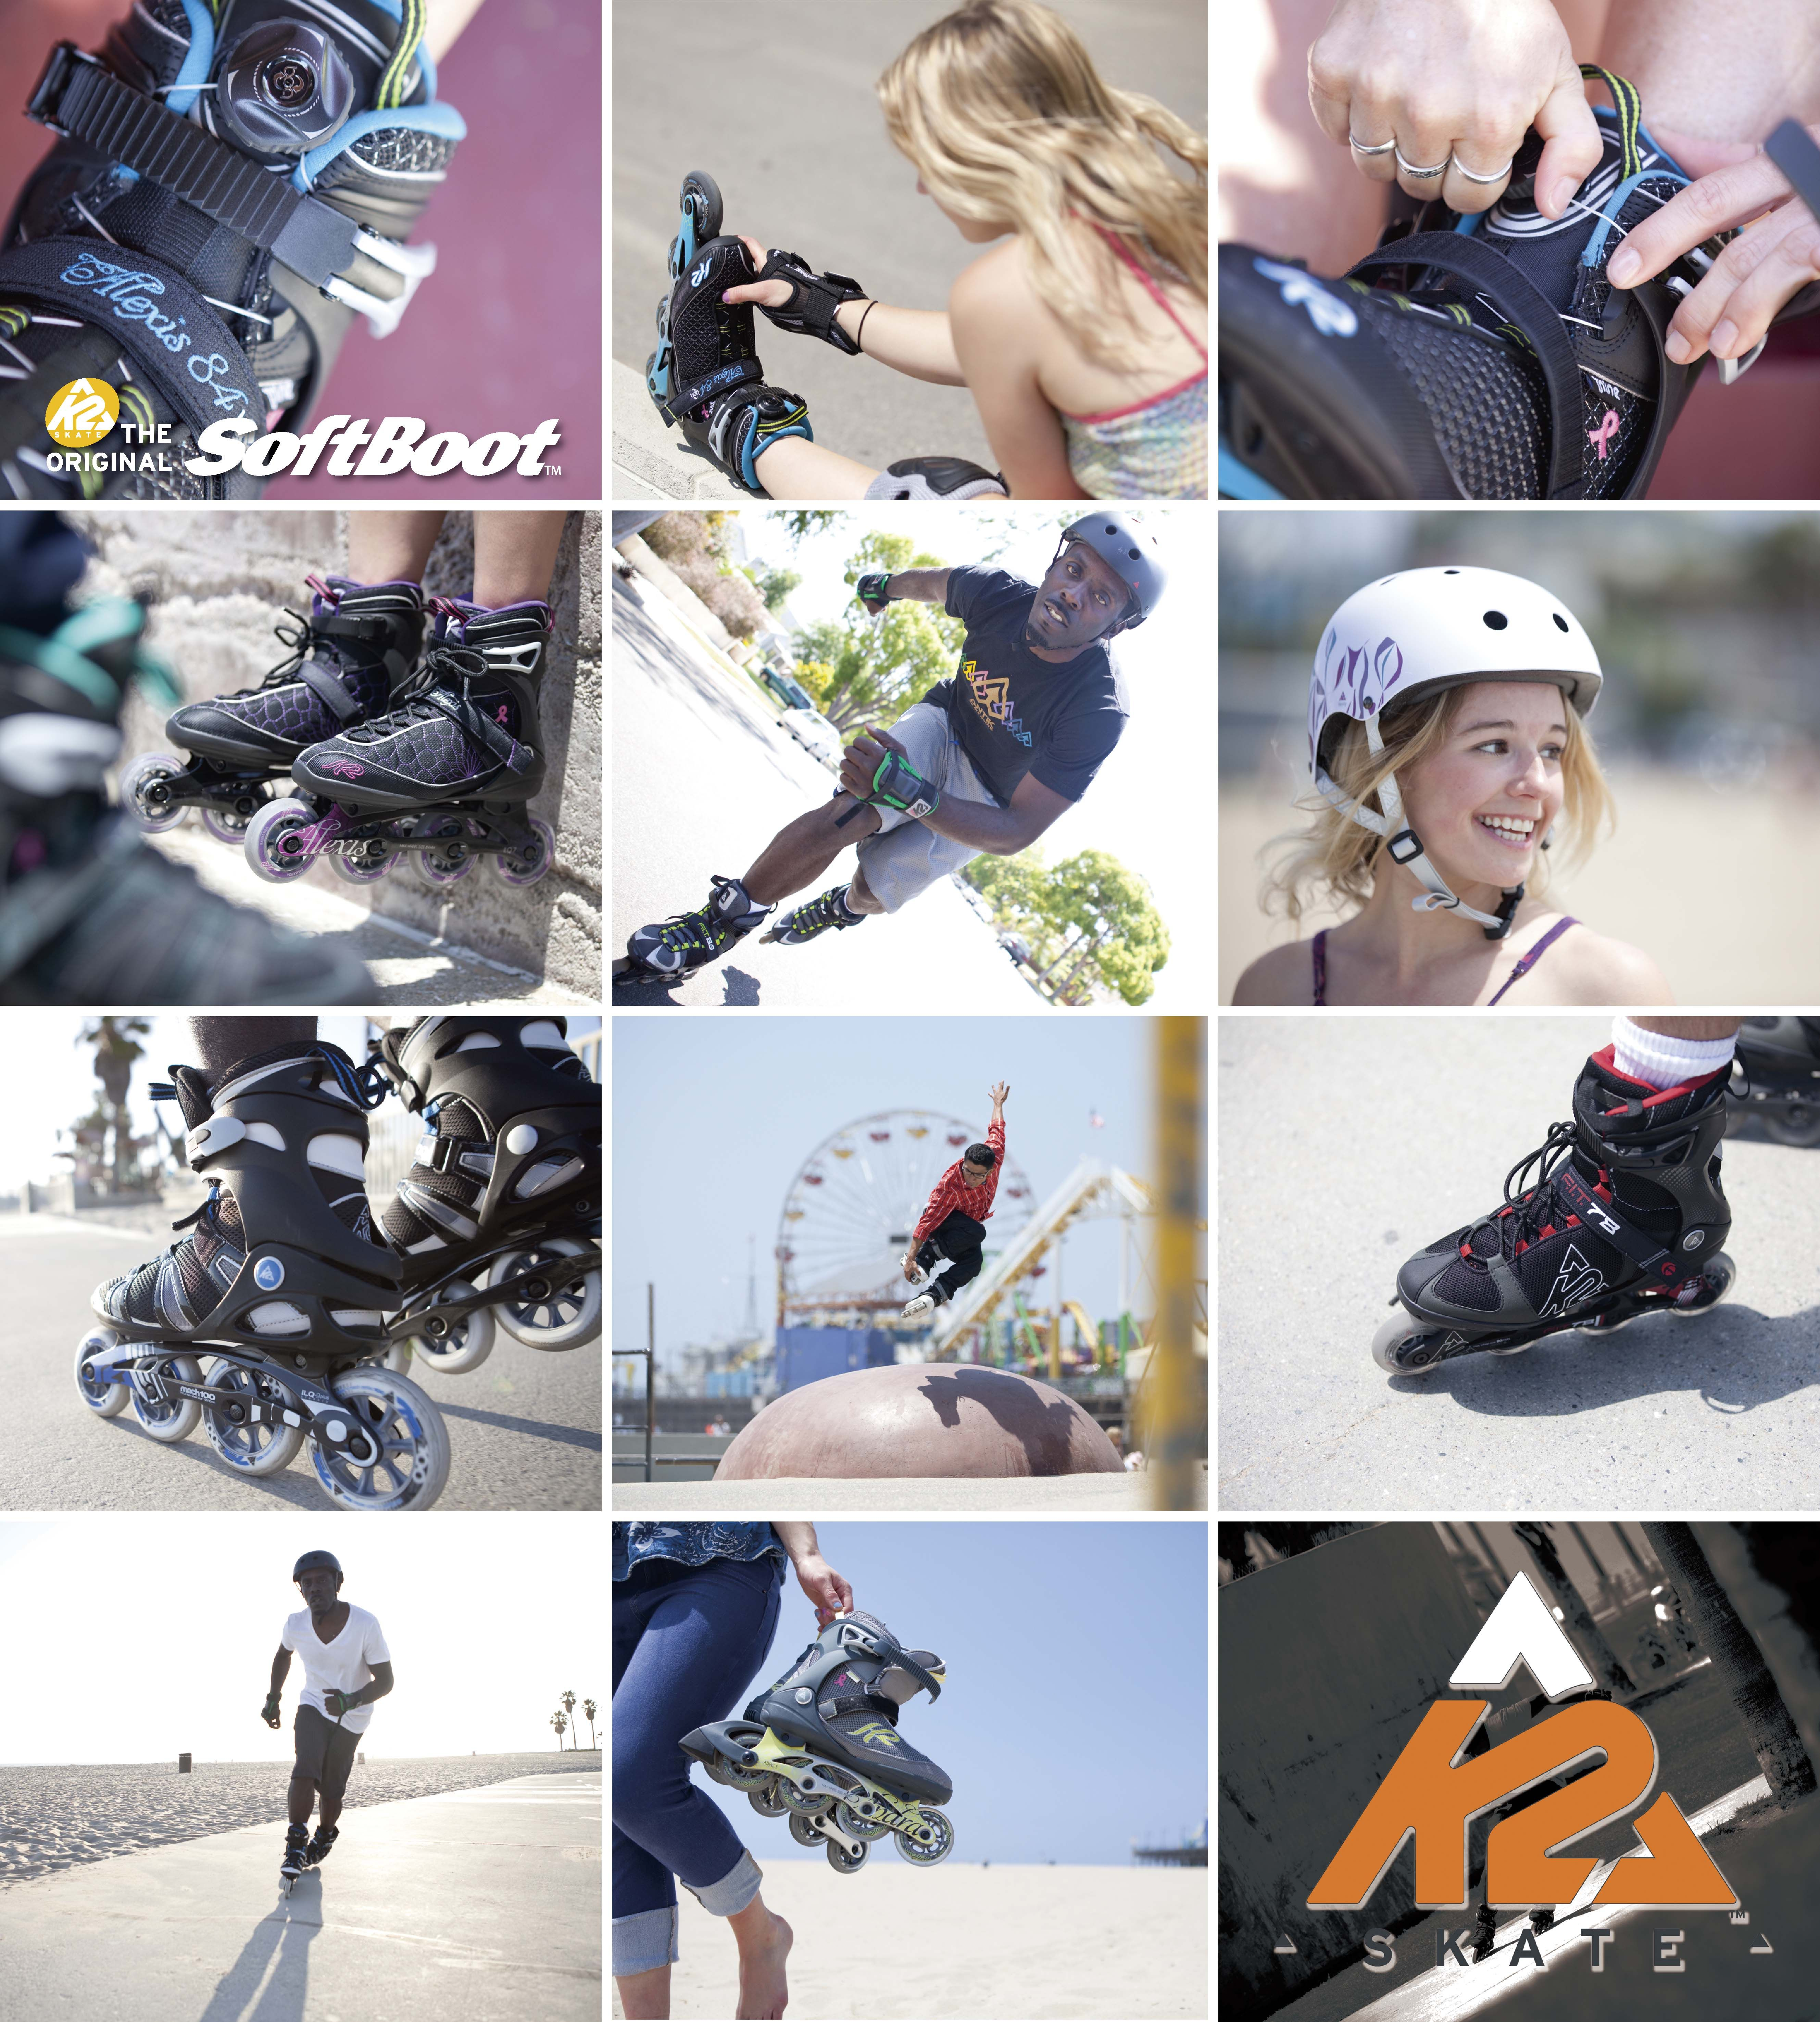 K2 inline skates - K2 has revolutionized a lot of what we see on inline skates today. When you are shopping for K2 skates it may be a good idea to learn about some of the technologies used by K2.